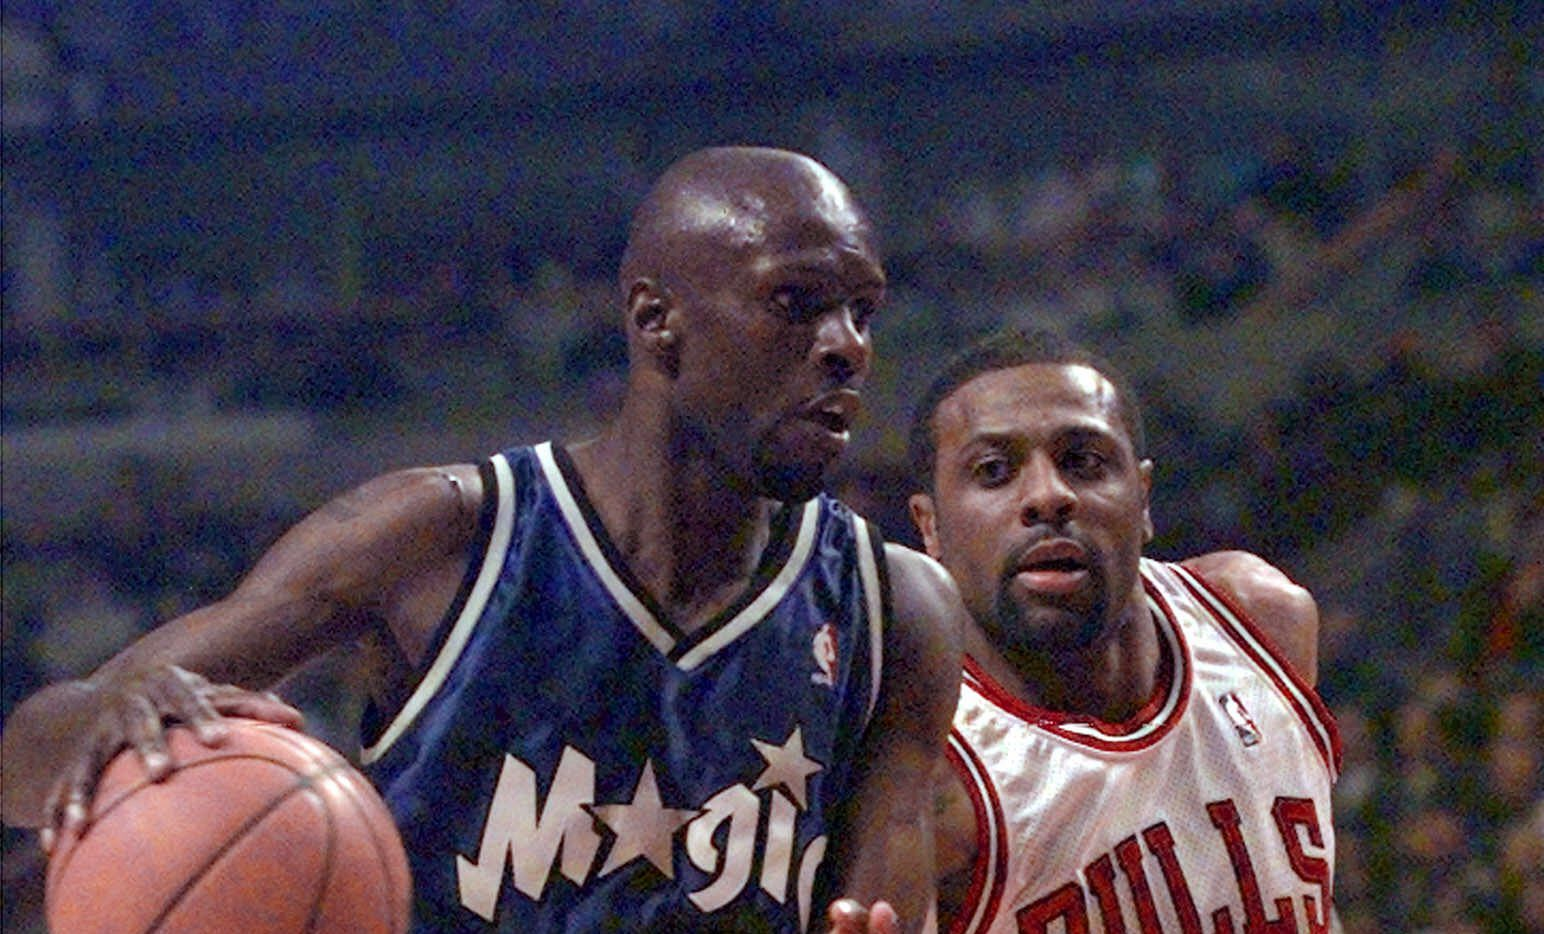 Orlando Magic's Darrell Armstrong (10) drives around Chicago Bulls' Randy Brown in the first quarter Monday, March 20, 2000, in Chicago.